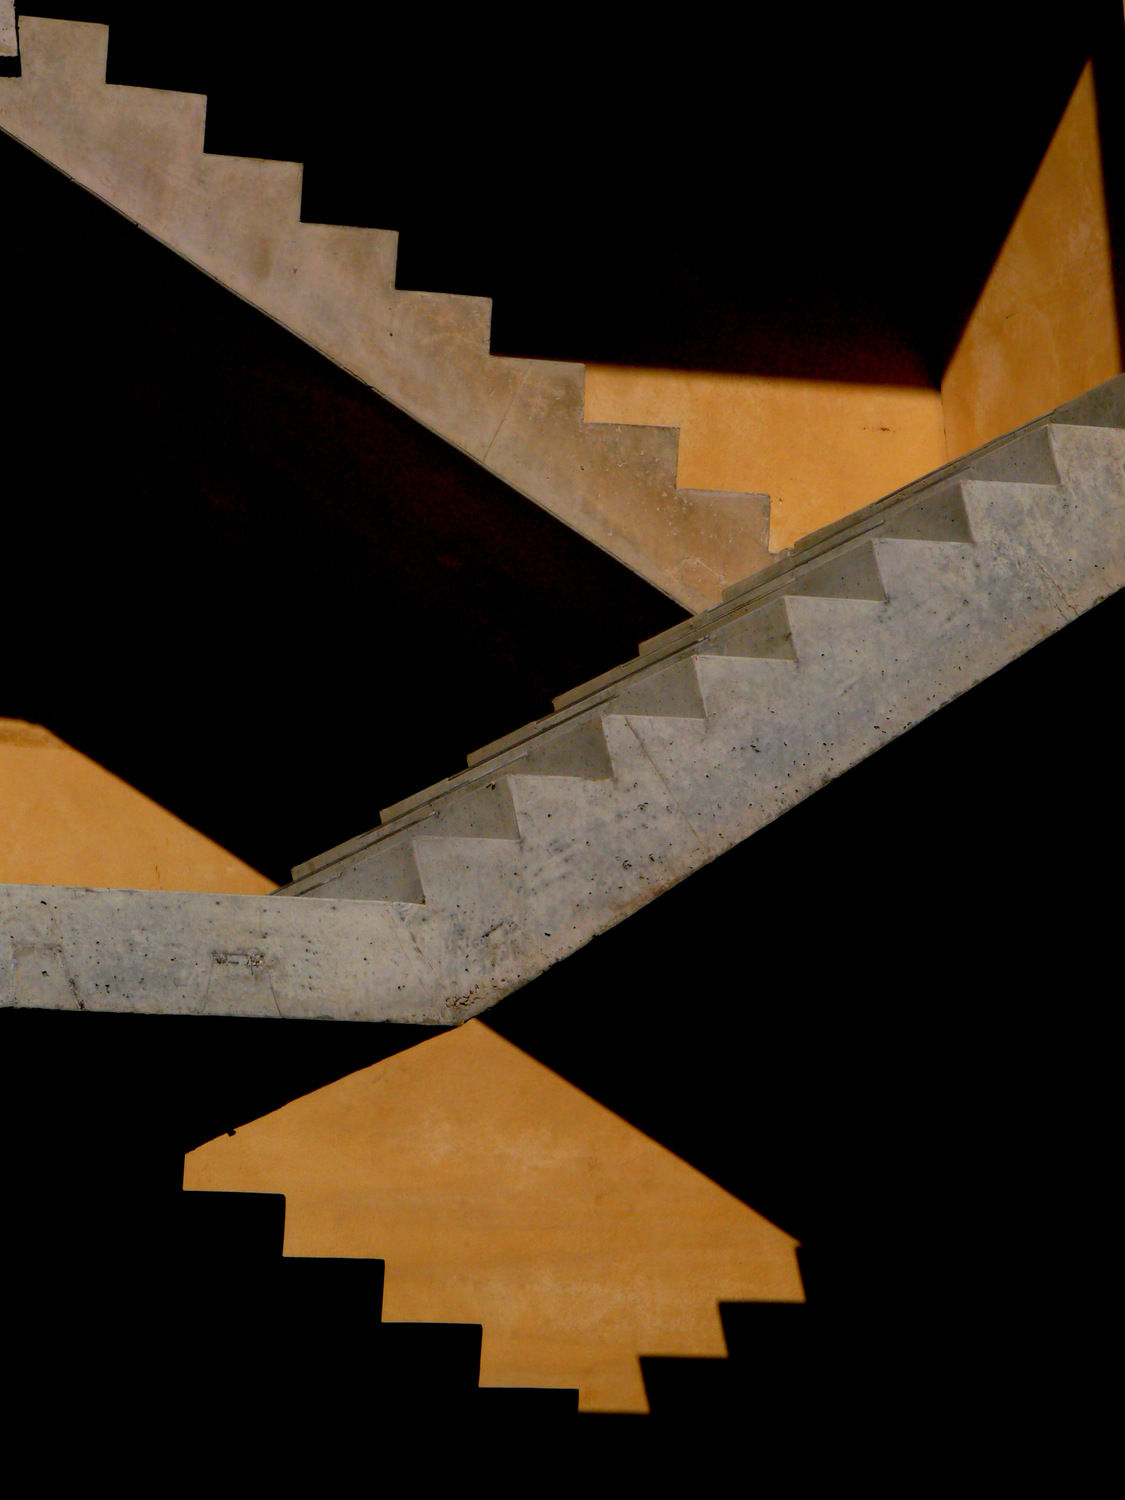 Guntis_Lauzums_Abstract Series_Staircase_1.JPG